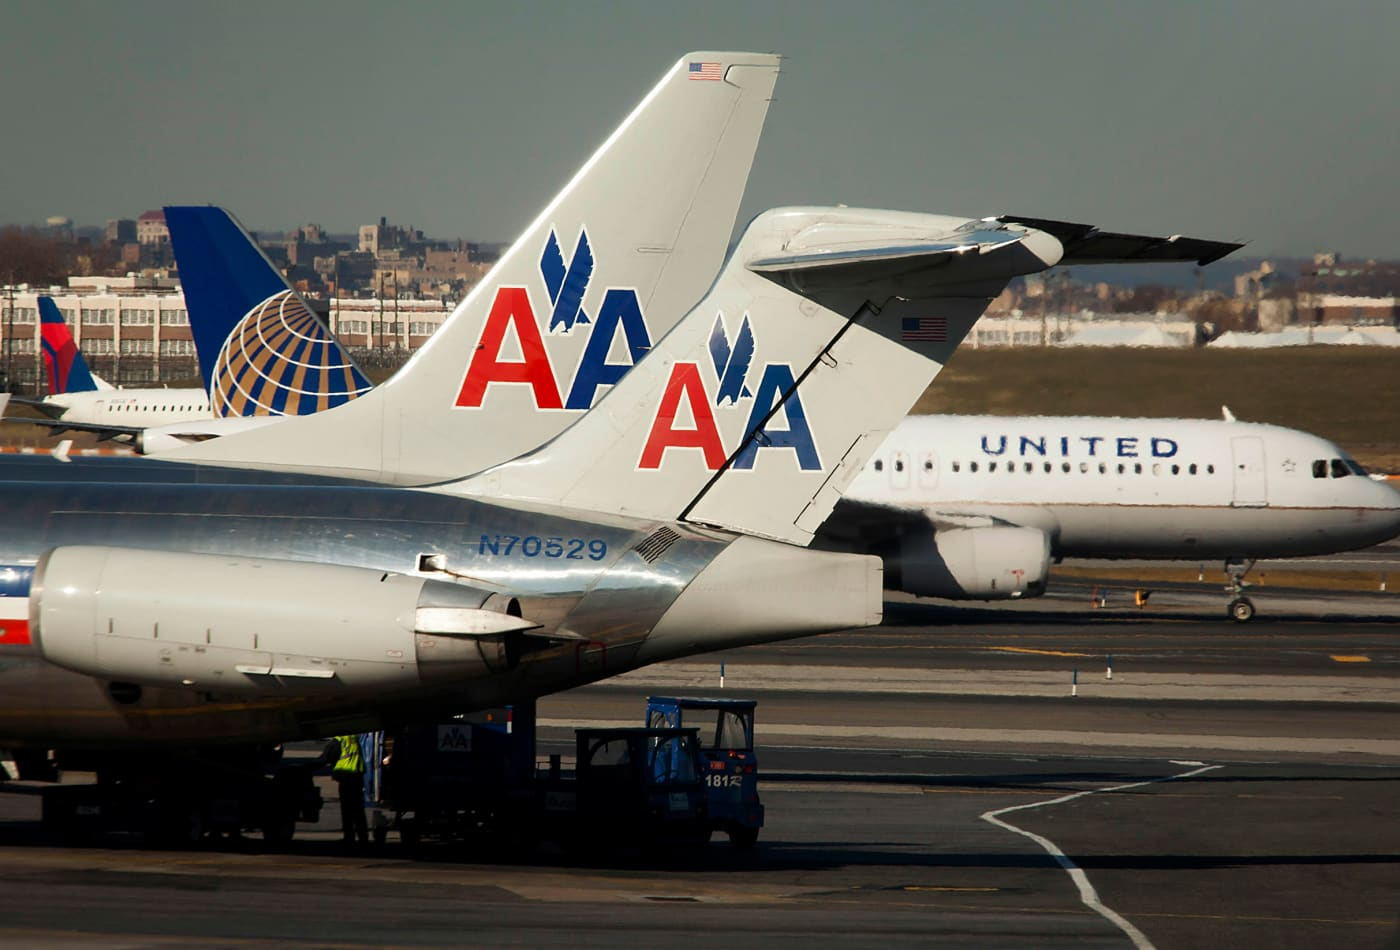 Consolidating flights to US cities could help stem airline industry losses as coronavirus dampens demand, executives say